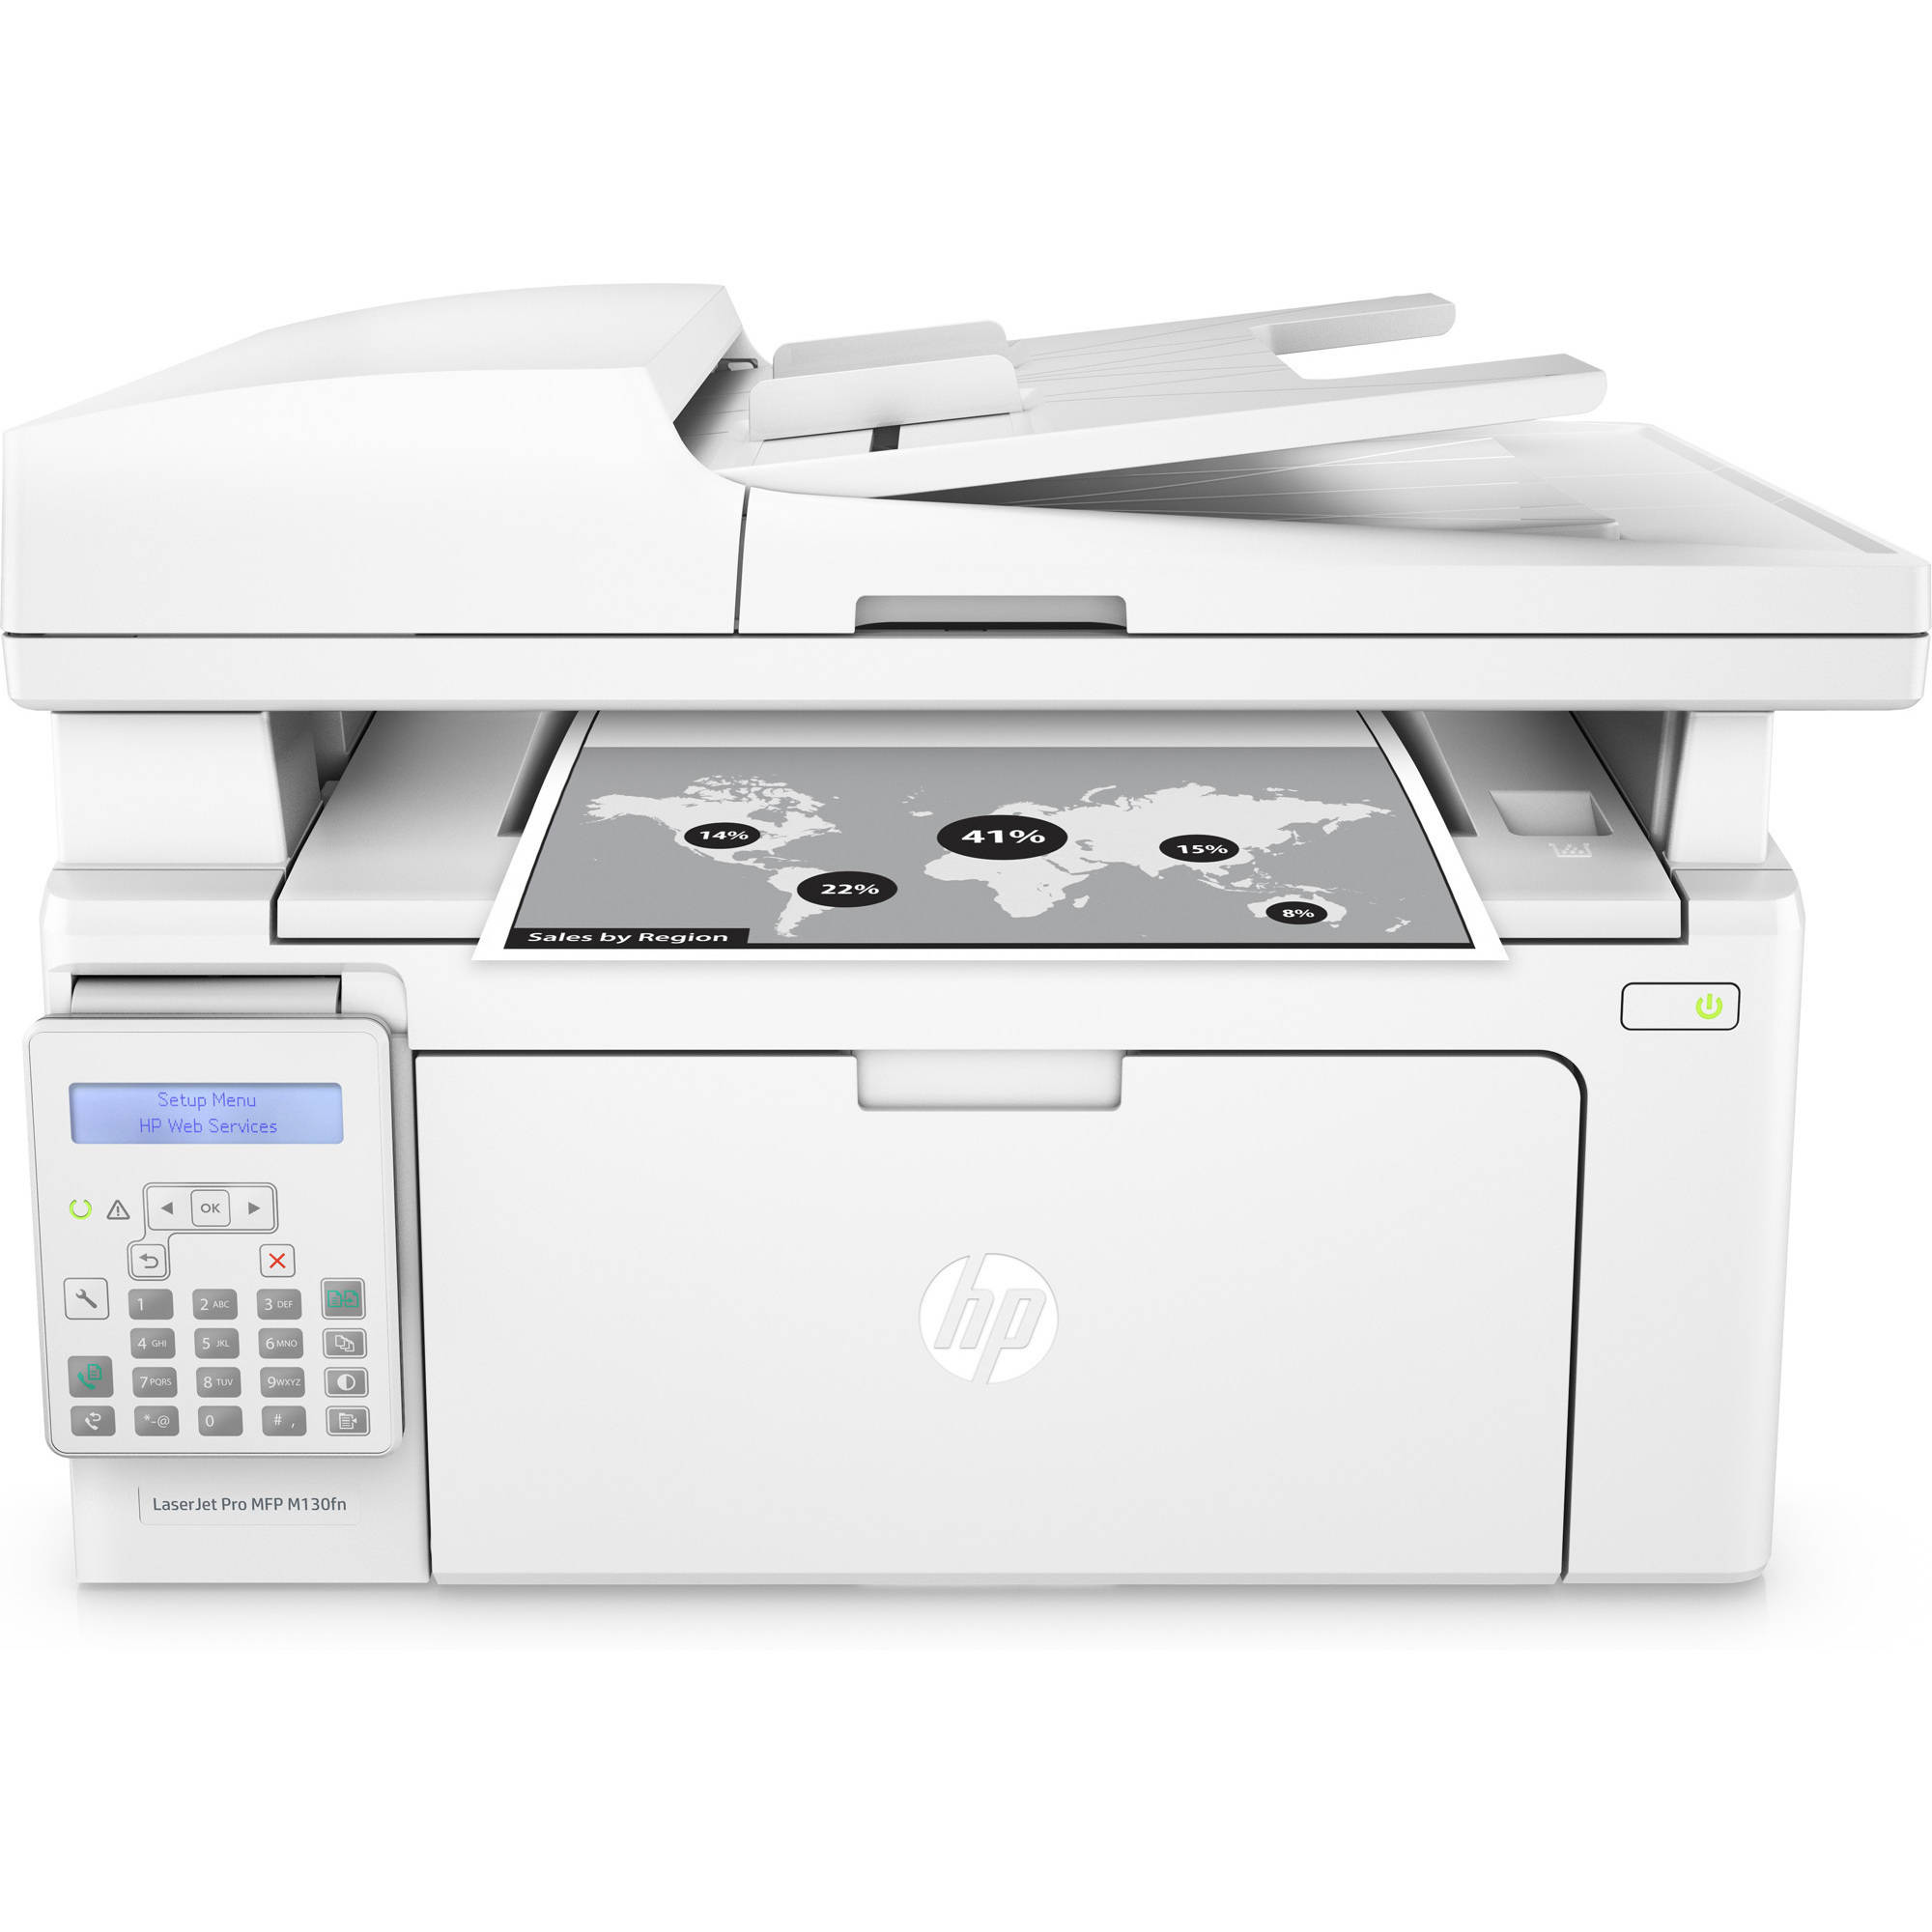 Recertified HP G3Q59AR#BGJ LaserJet Pro MFP M130fn Multifunction Printer/Copier/Scanner/Fax Machine